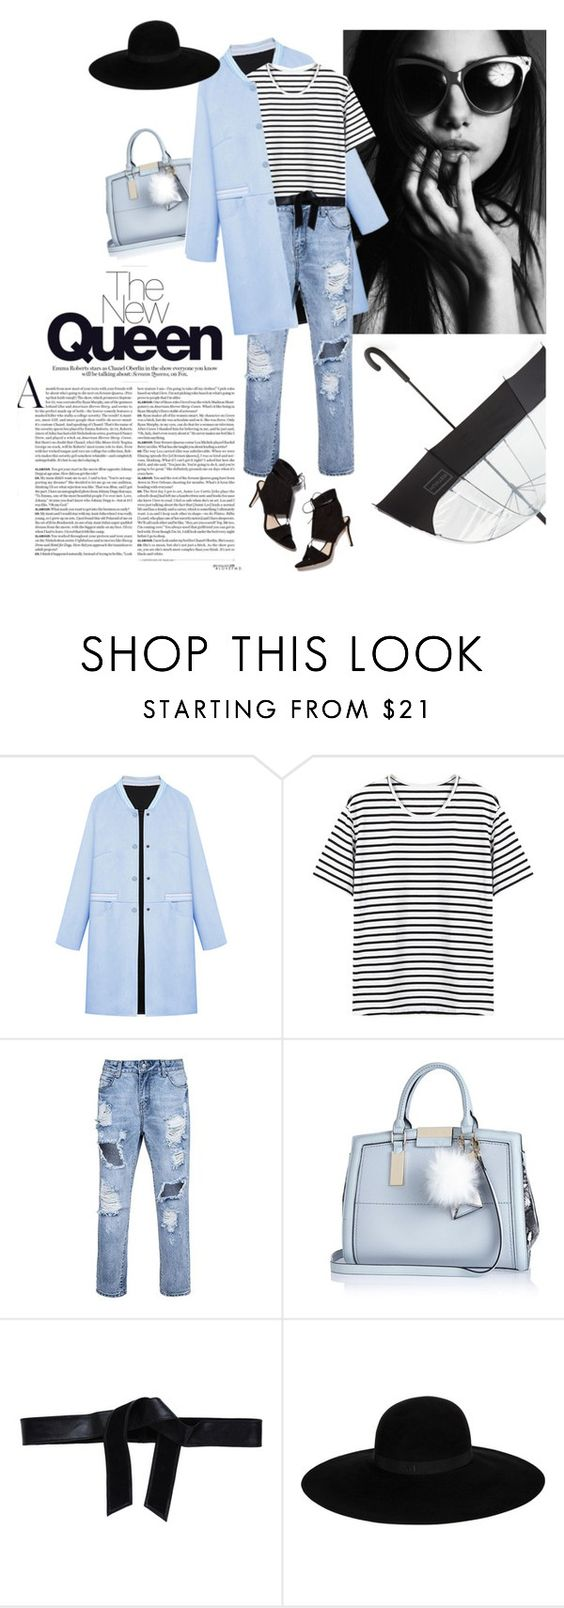 """""""Rainy Dayze"""" by lisalockhart ❤ liked on Polyvore featuring WithChic, River Island, RoÃ¿ Roger's, Maison Michel, Loeffler Randall and Hunter"""